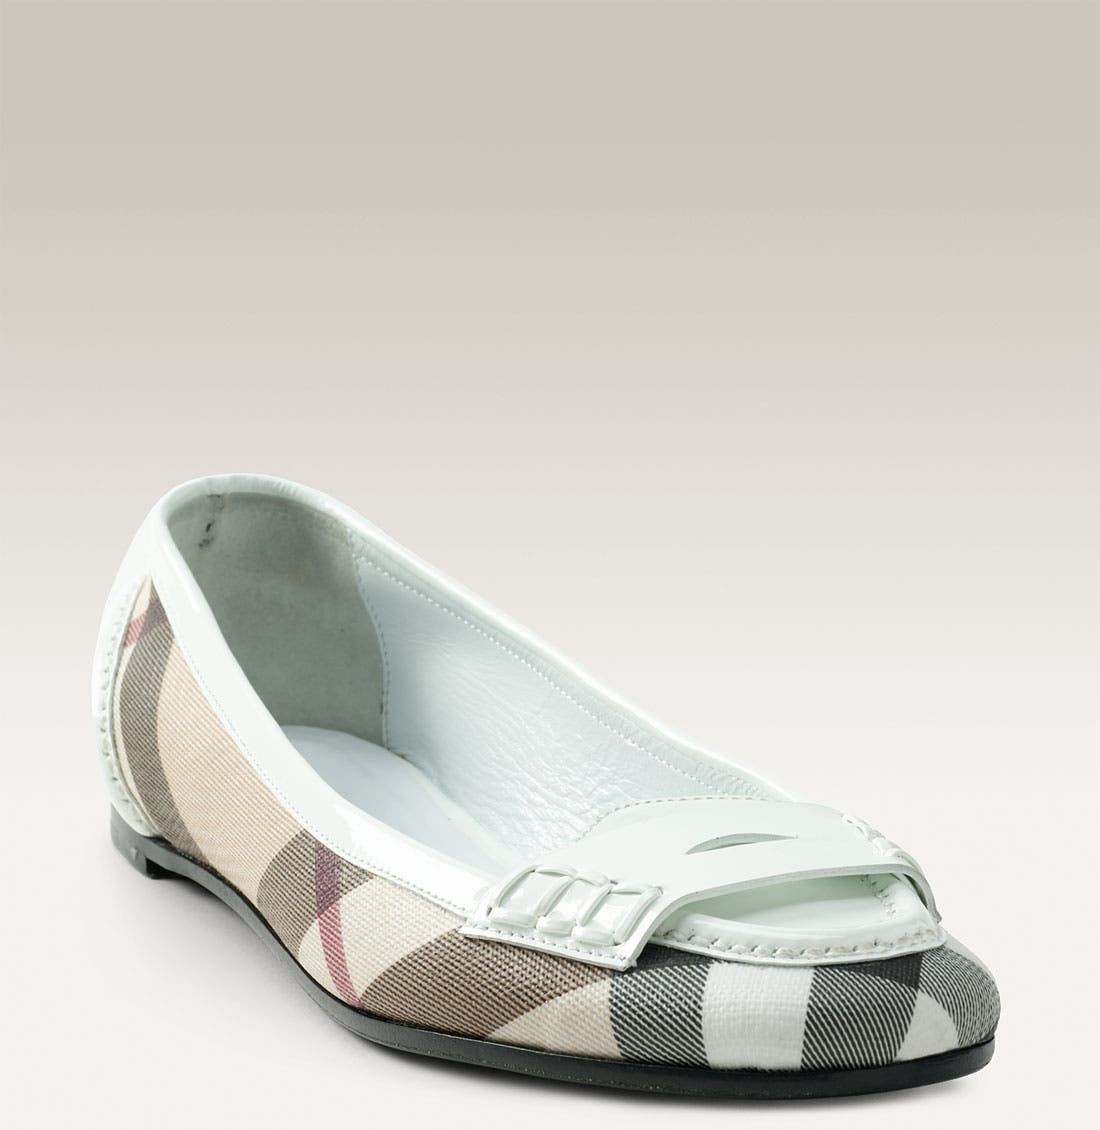 Main Image - Burberry Check Print Moccasin